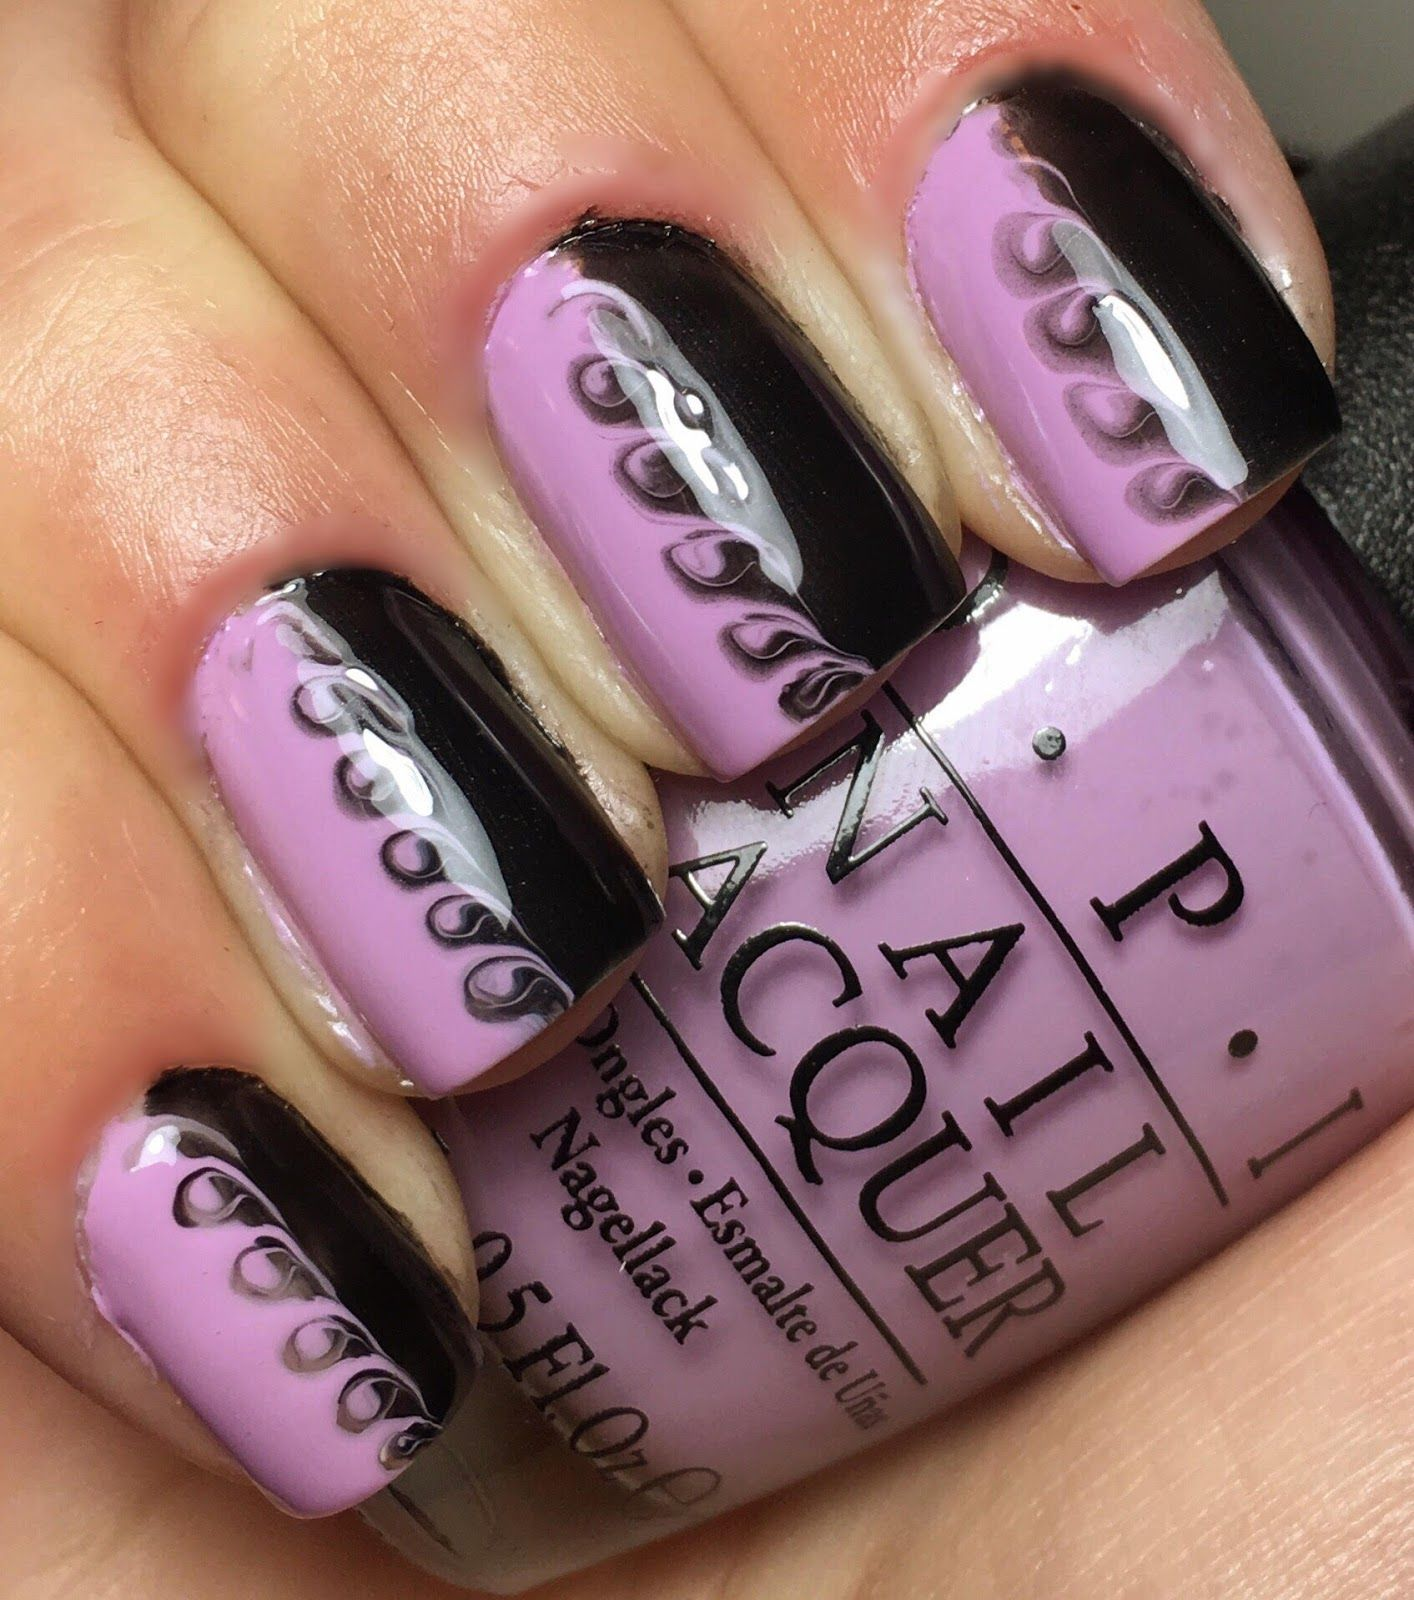 Toothpick Nail Art Designs: Nails By An OPI Addict: Toothpick Swirl Mani